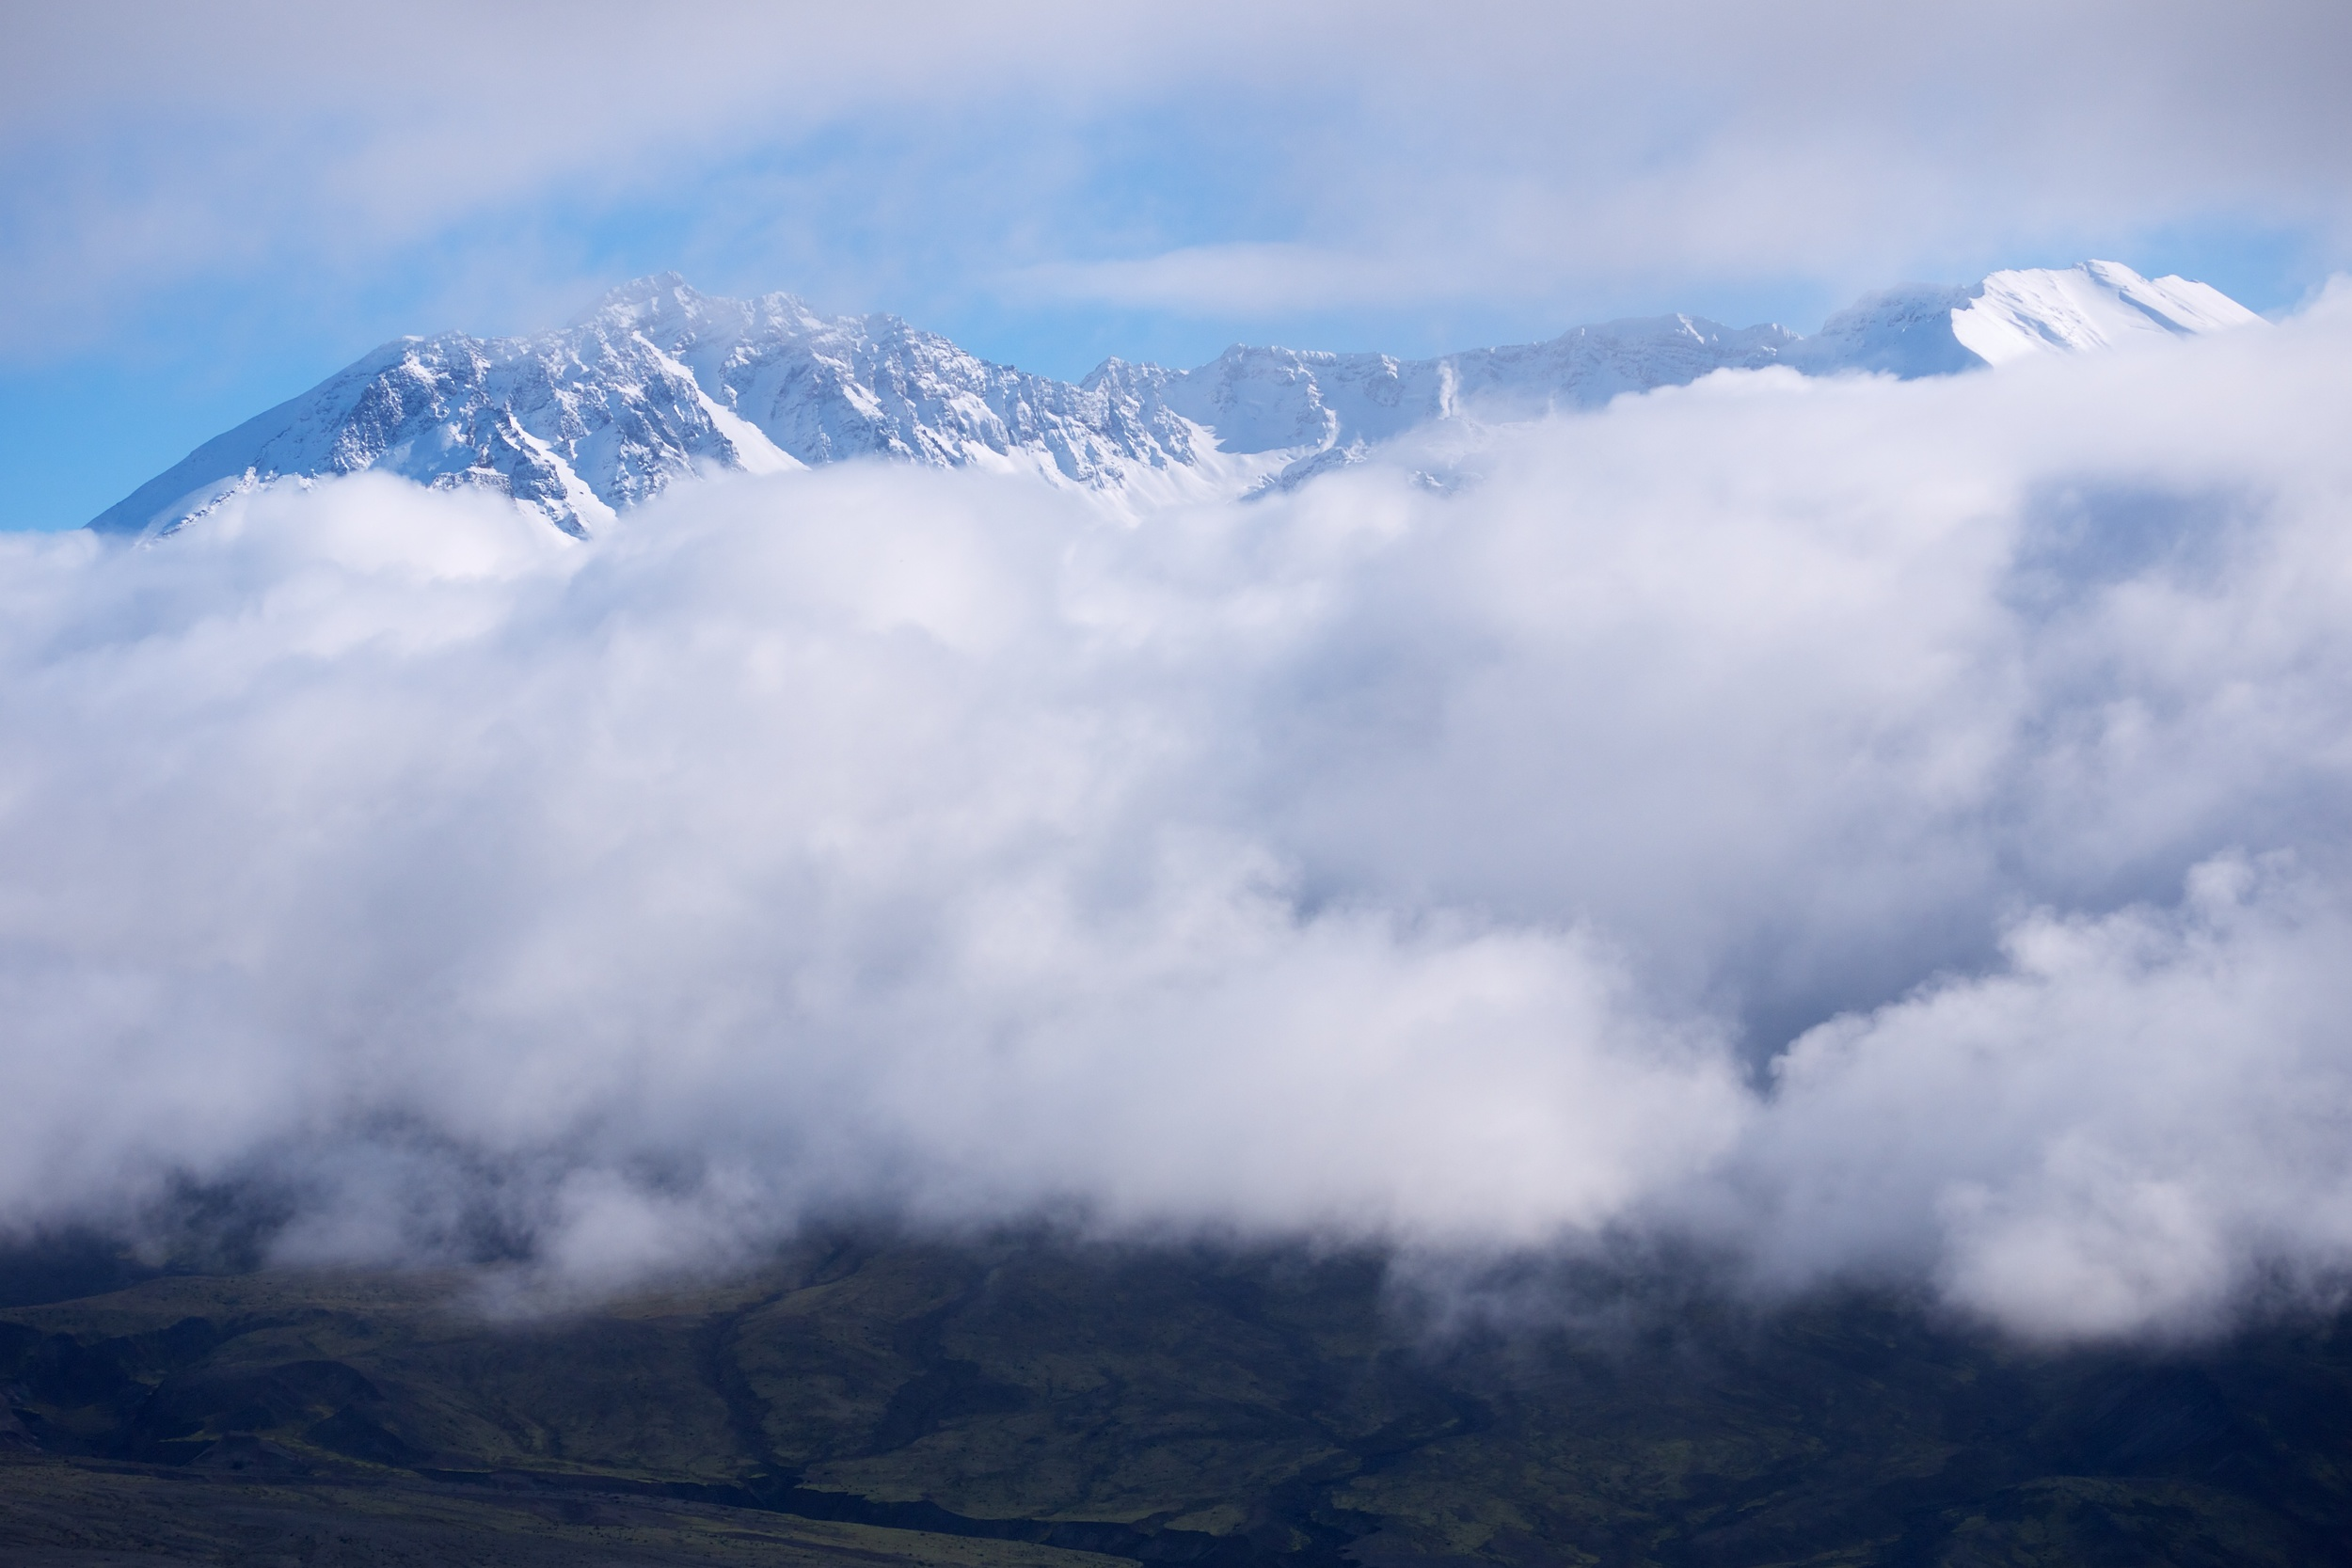 Crater of Mt. St. Helens peeking through he clouds